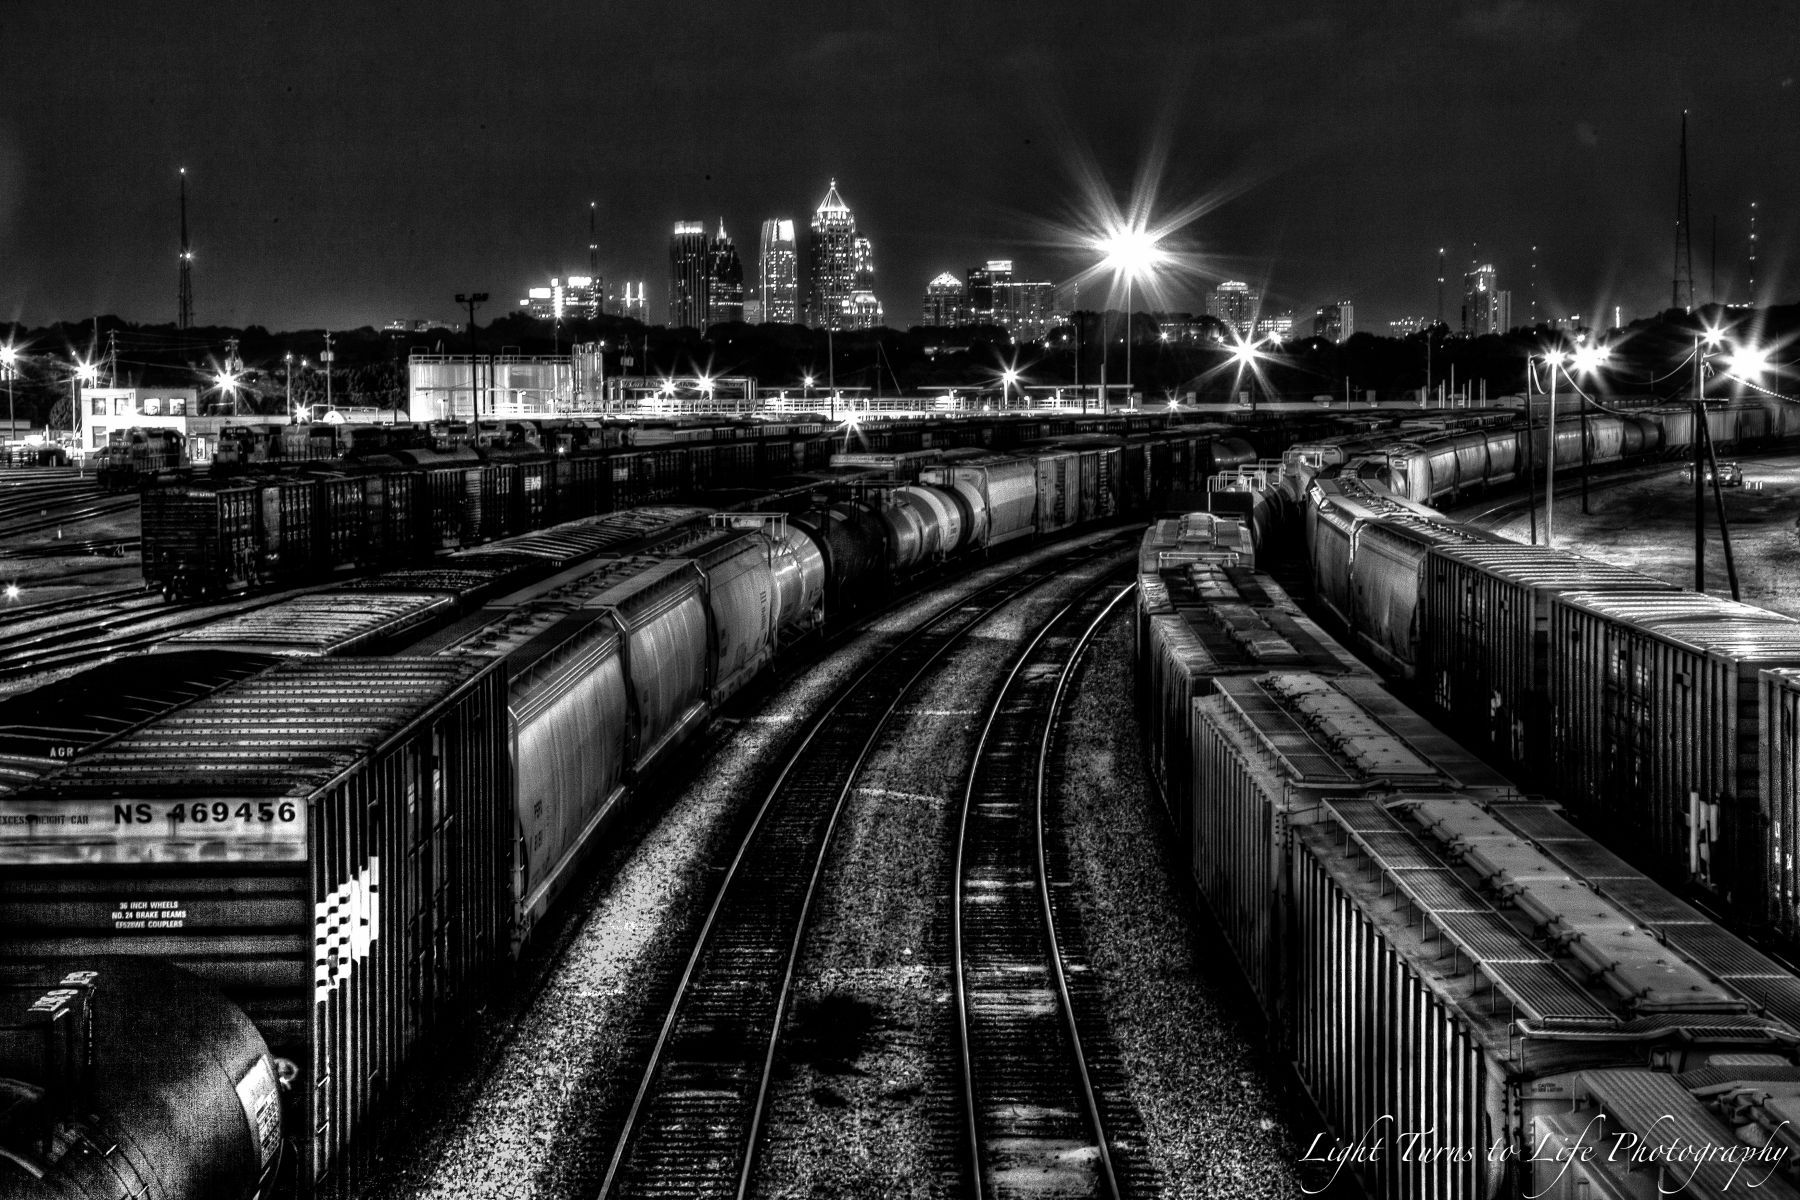 1r20120720__1207_atl_train_yard_069_tonemapped_edit120720copyright_2011_vinson_smith